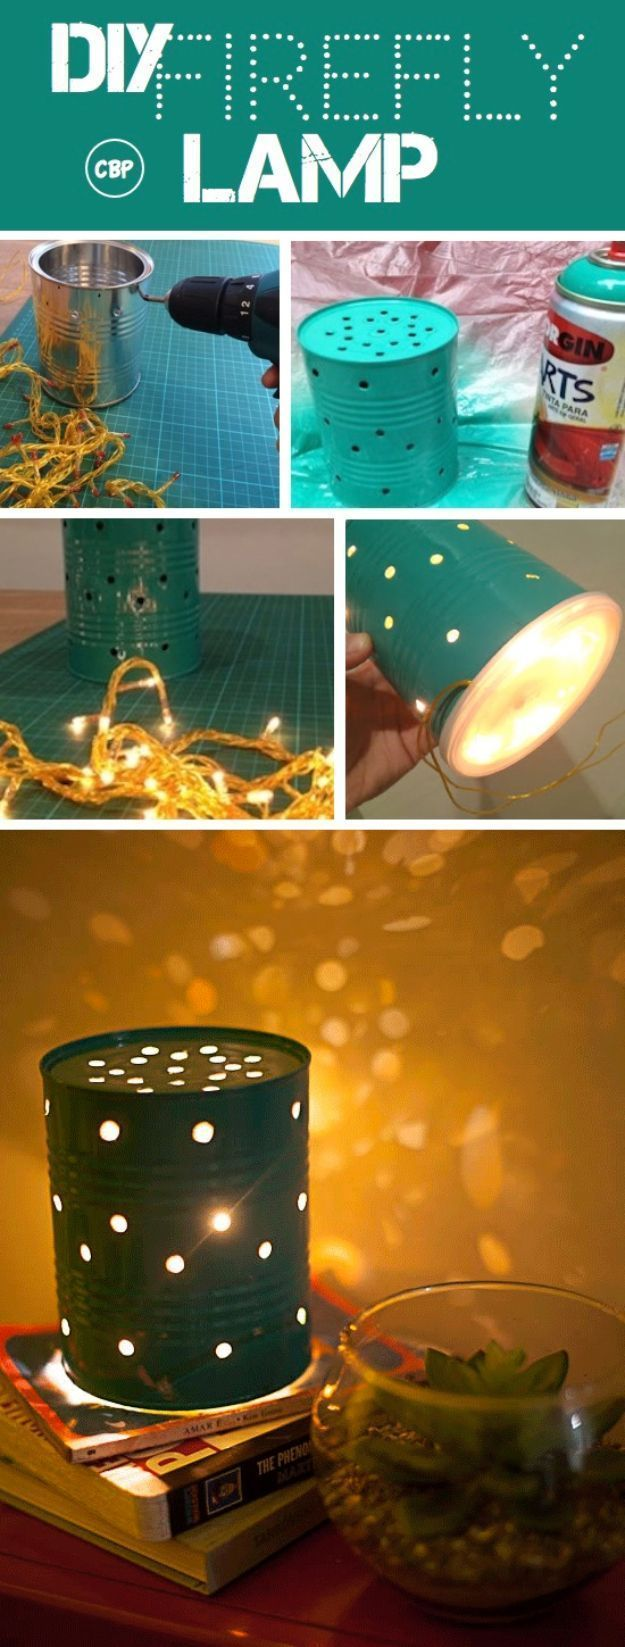 DIY Teen Room Decor Ideas for Girls - DIY Firefly Lamp - Cool Bedroom Decor, Wall Art & Signs, Crafts, Bedding, Fun Do It Yourself Projects and Room Ideas for Small Spaces http://diyprojectsforteens.com/diy-teen-bedroom-ideas-girls